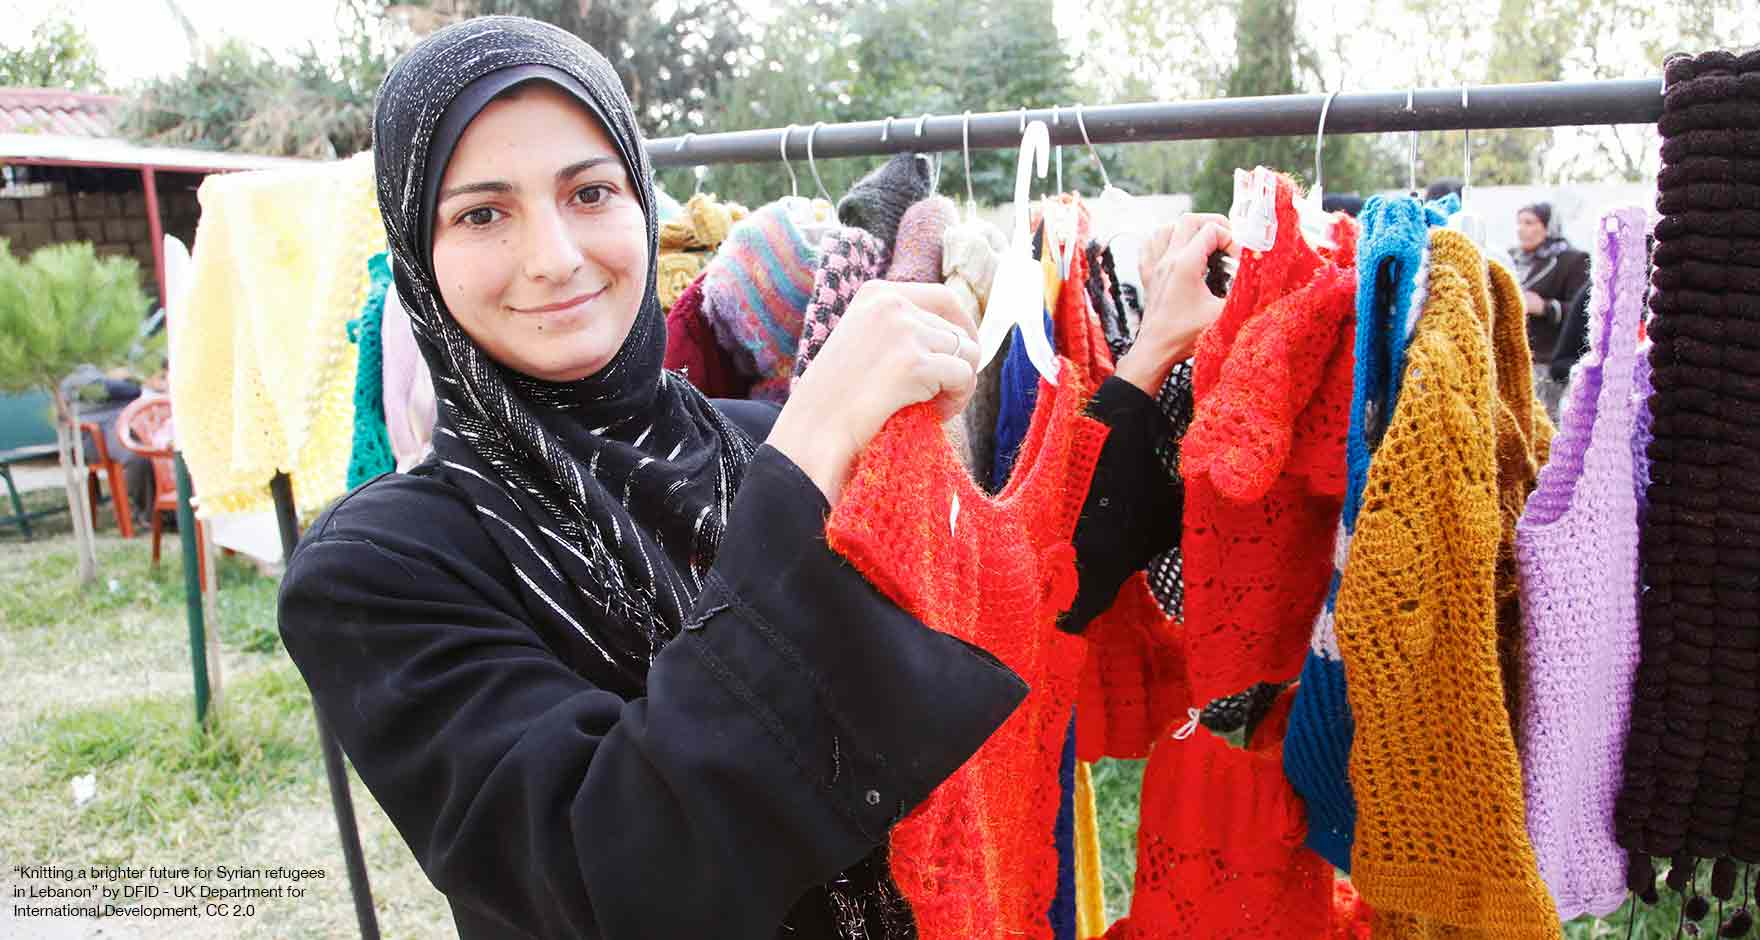 Syrian refugee displaying her hand-knitted garments